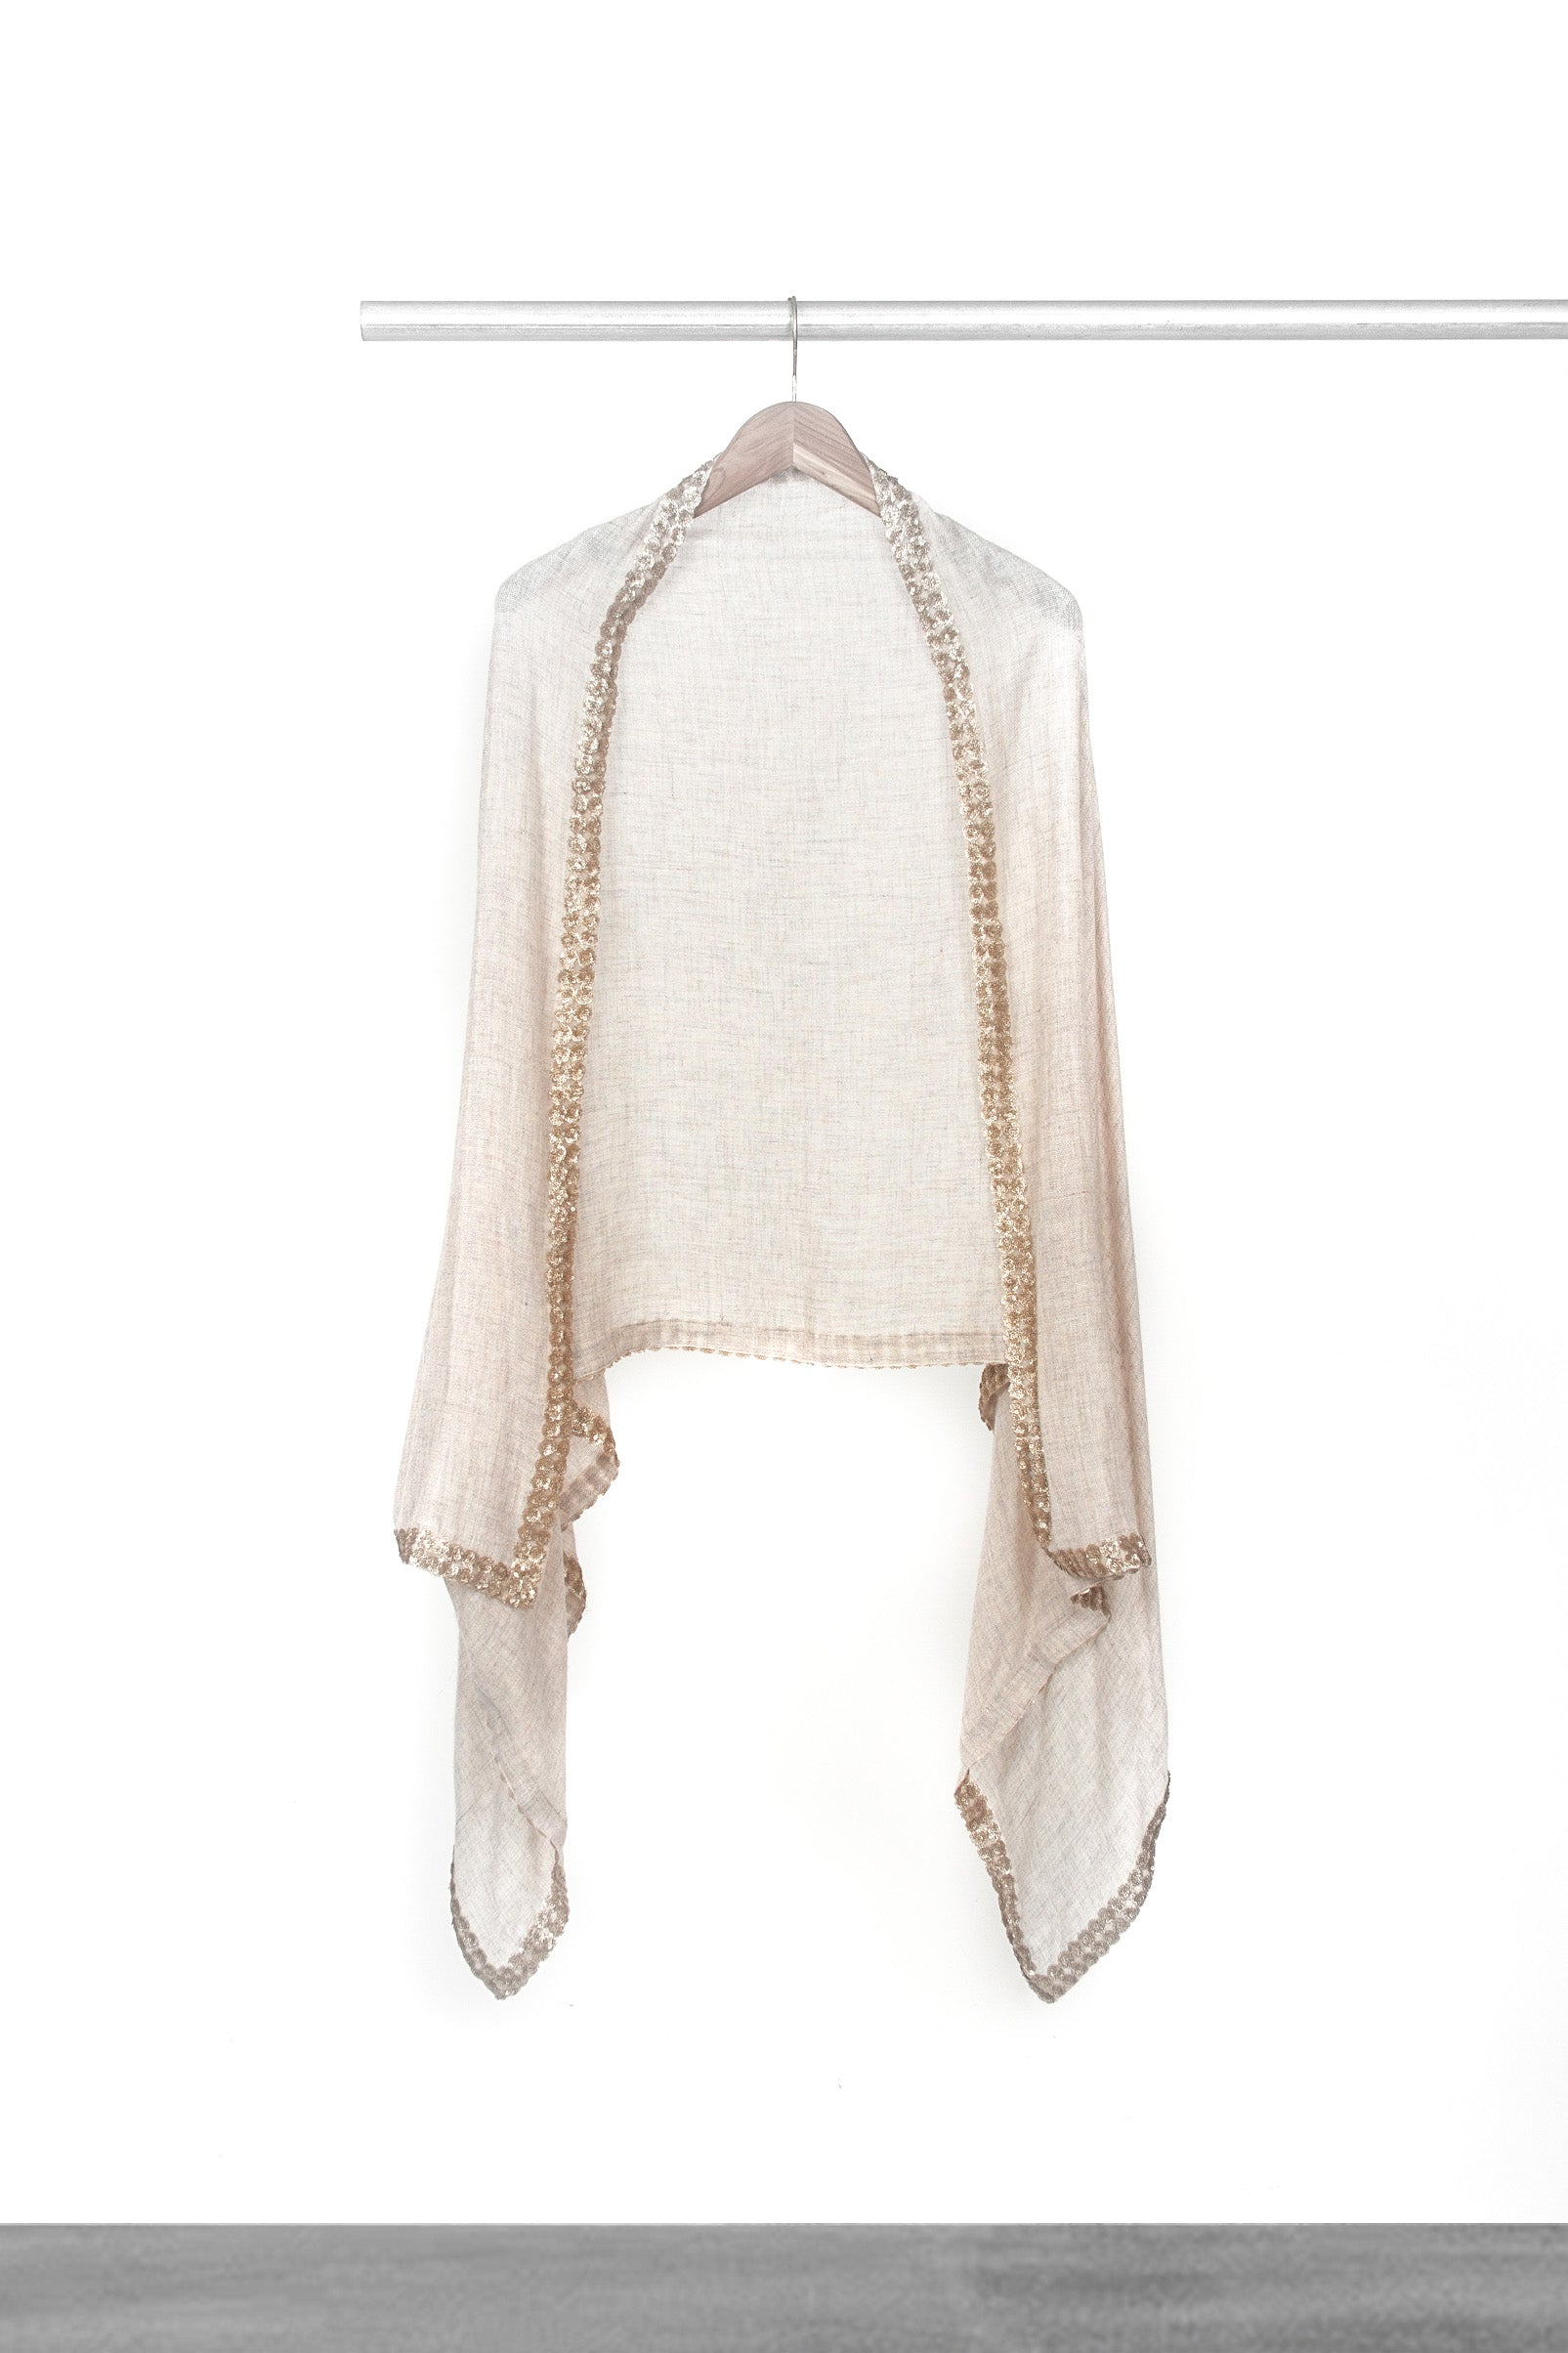 Woven Beige Shawl with trim